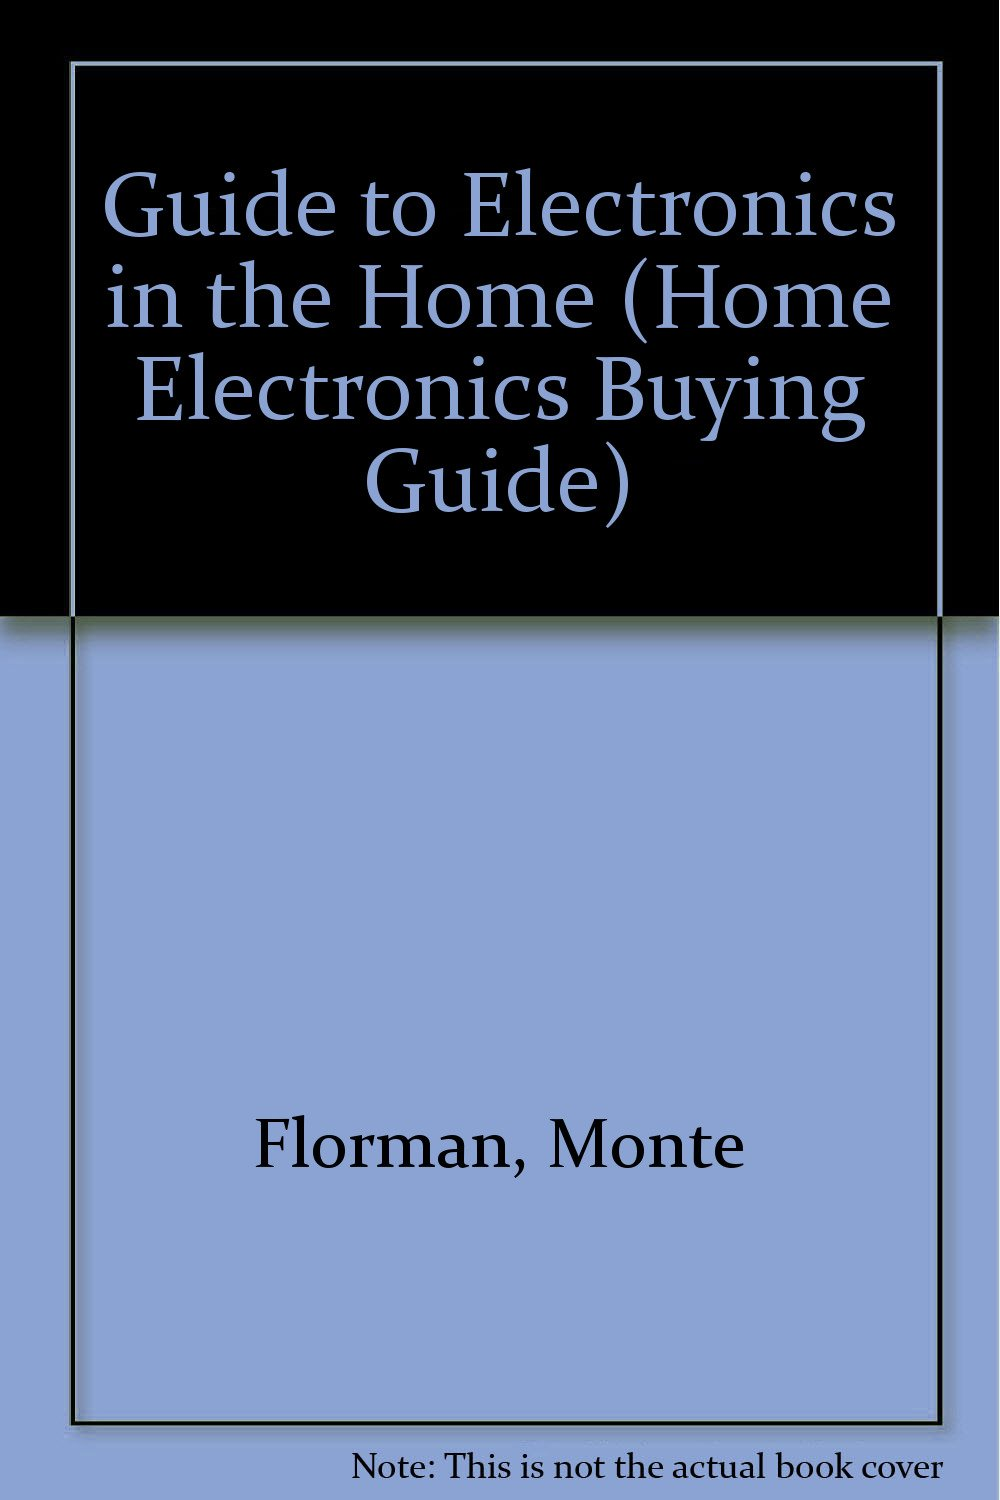 Guide to Electronics in the Home (HOME ELECTRONICS BUYING GUIDE): Monte  Florman, Consumer Reports Books: 9780890432150: Amazon.com: Books